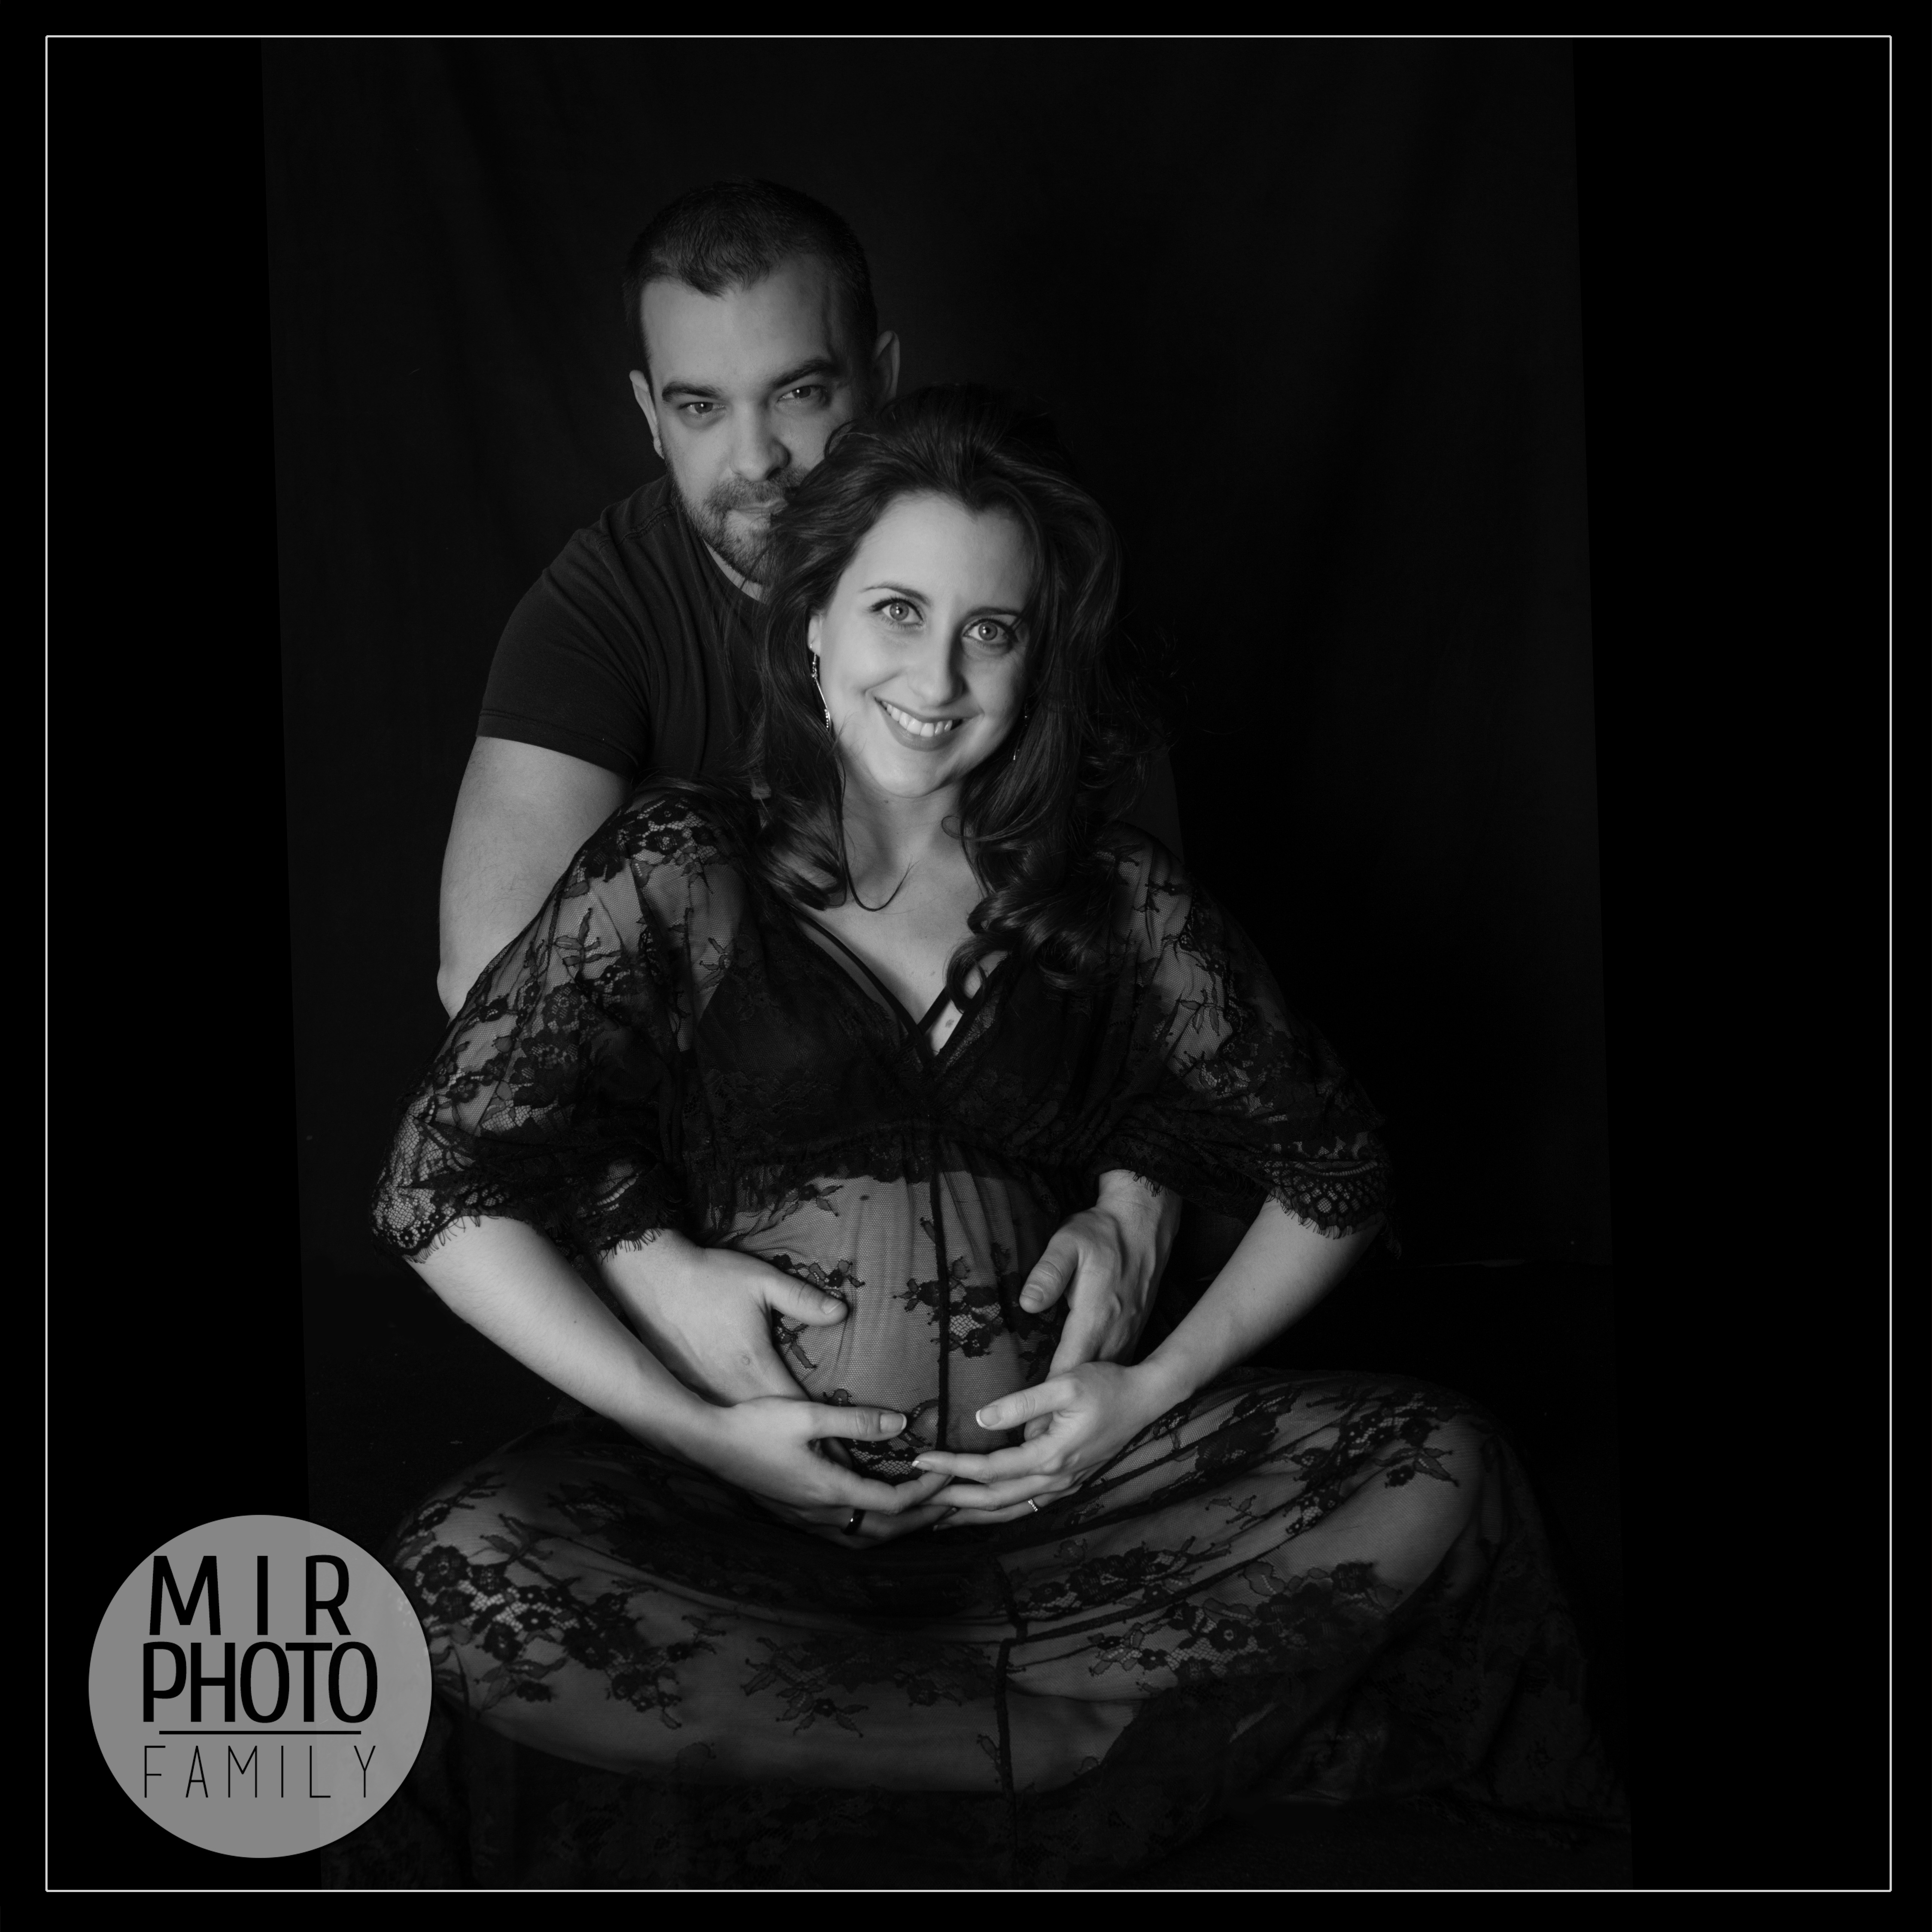 Future maman au studio photo